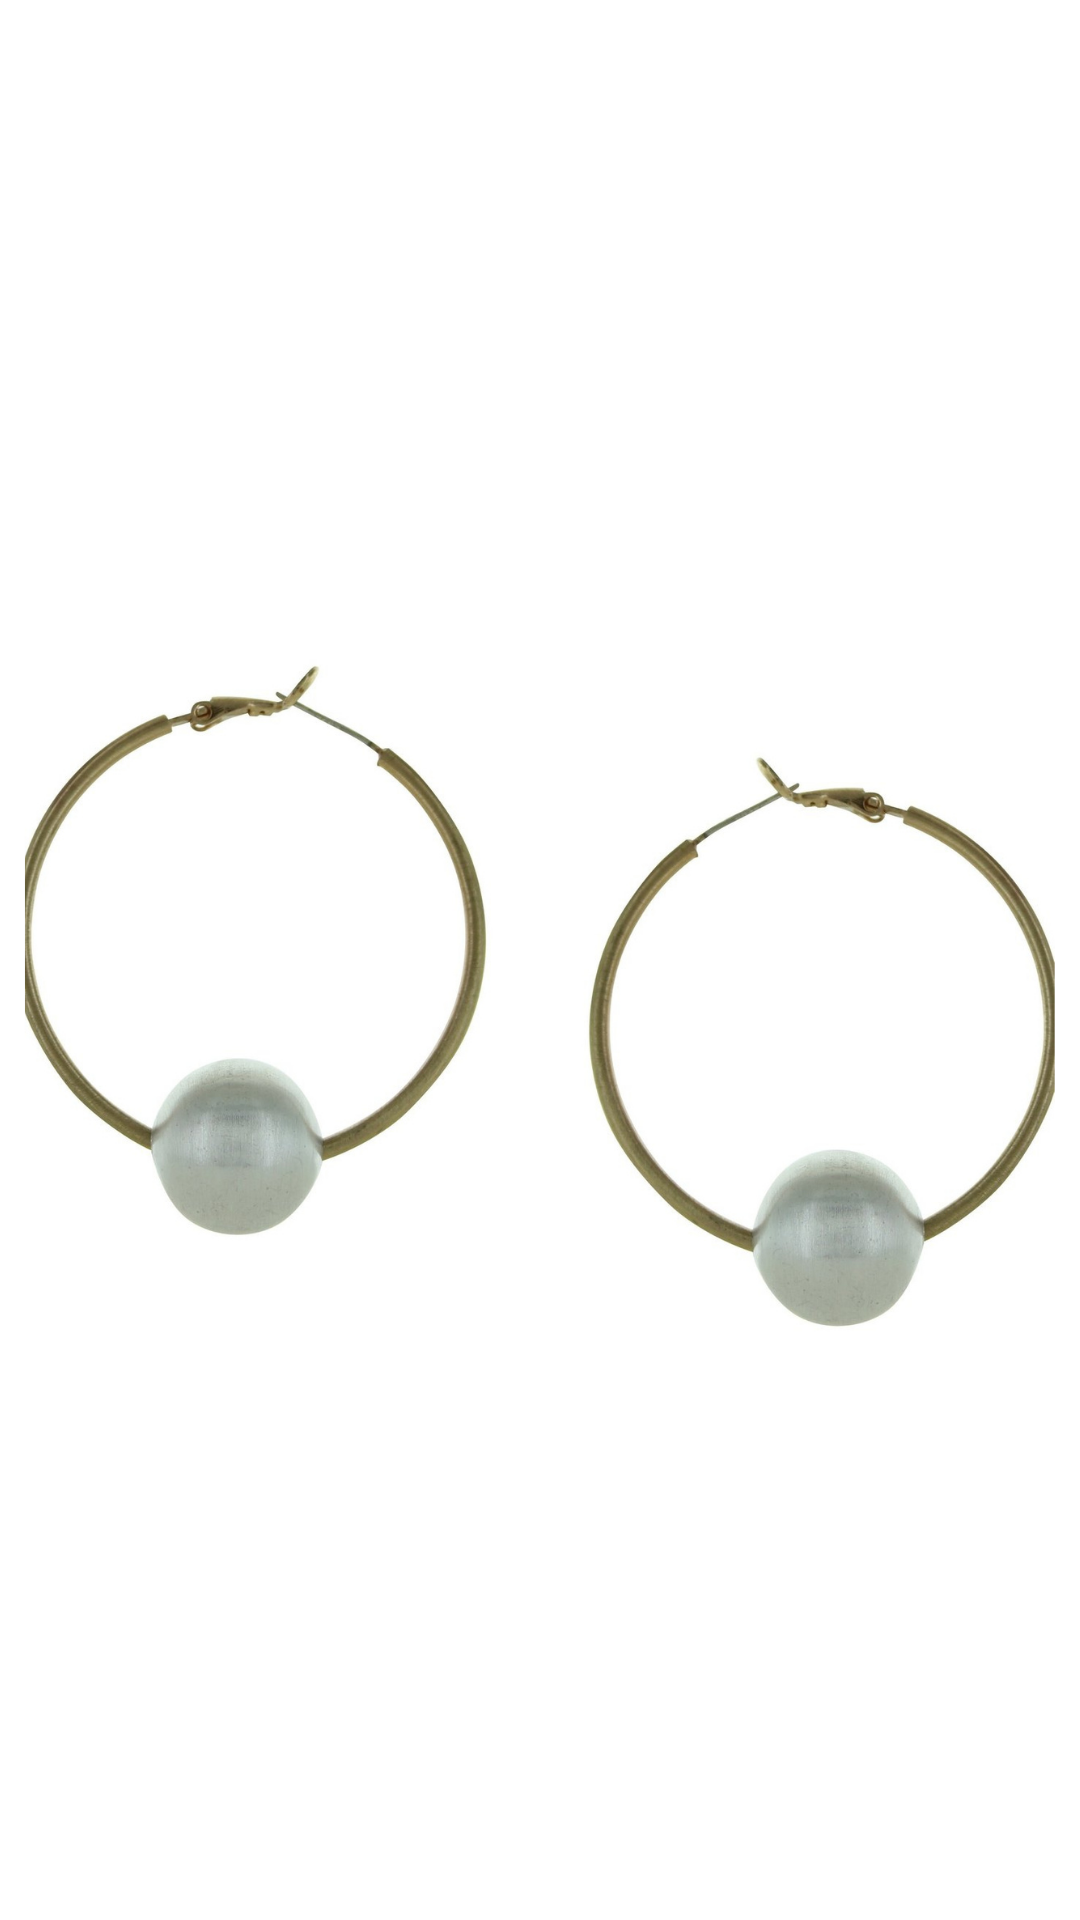 Gold Hoop w/Silver Ball